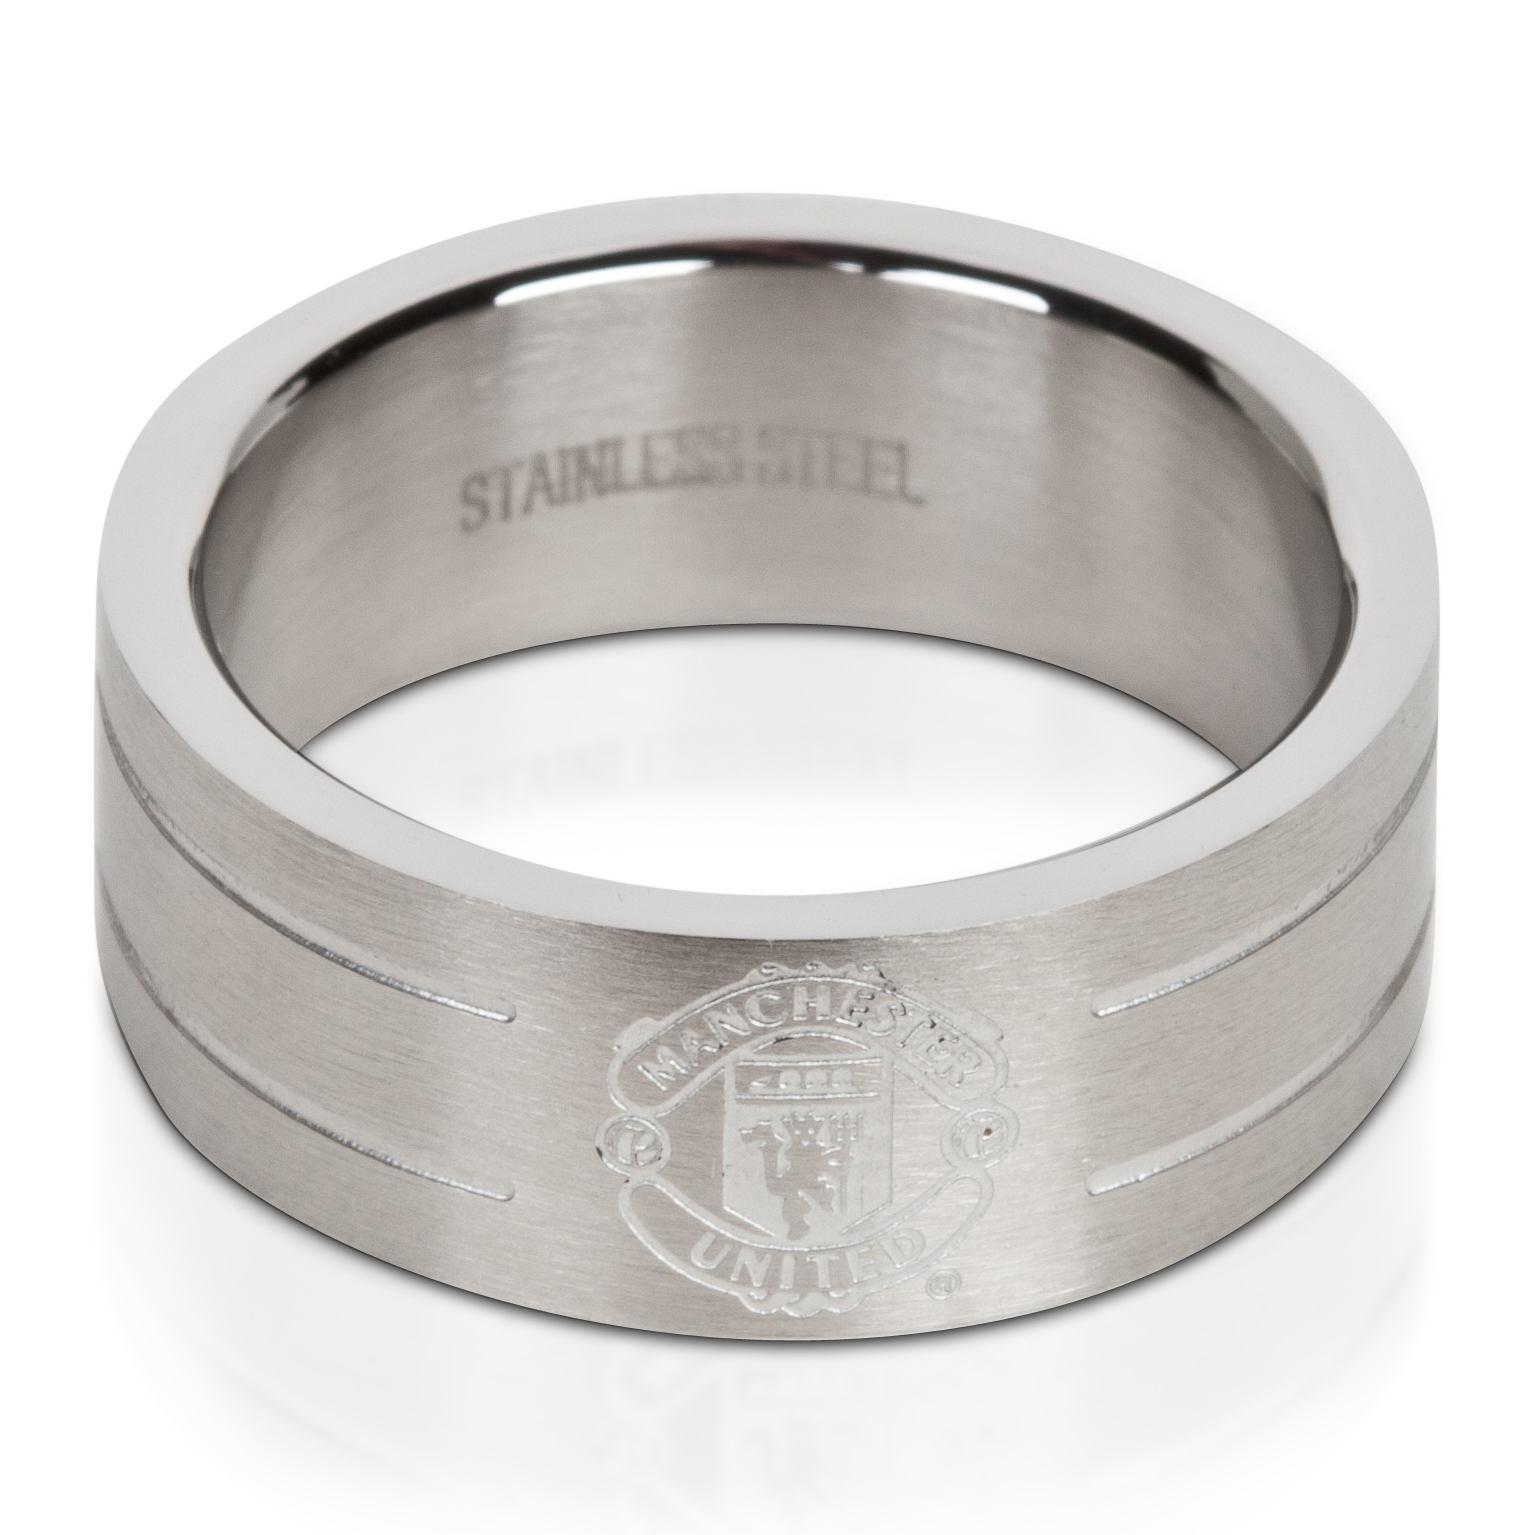 Manchester United Crest Ring - Stainless Steel